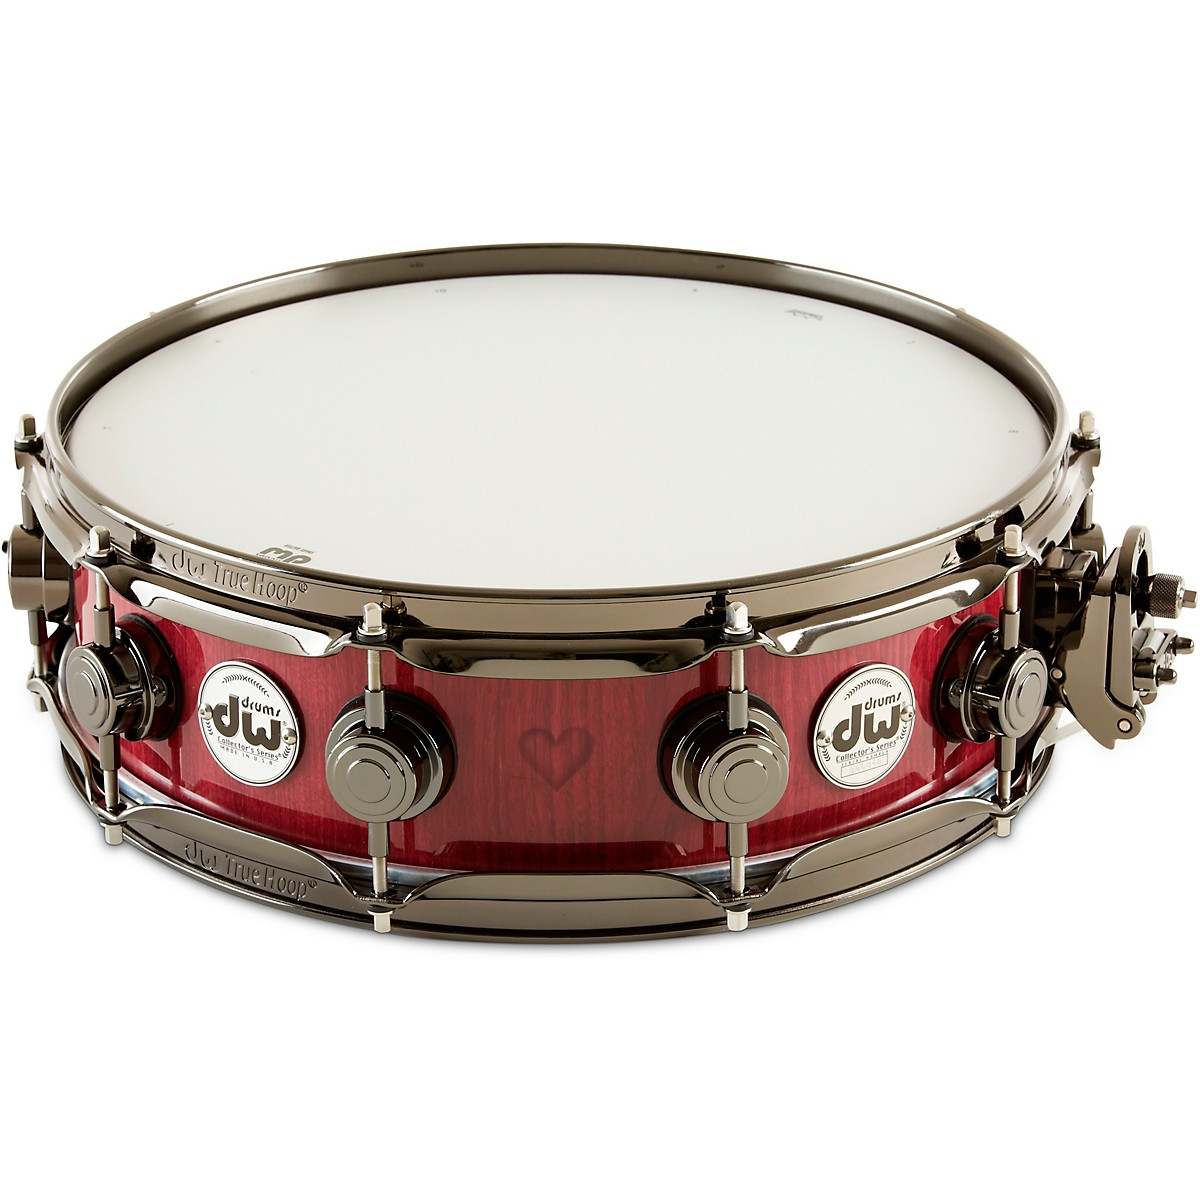 DW Collector's Exotic Purpleheart With Heart Graphic Snare Drum, Black Nickel Hardware